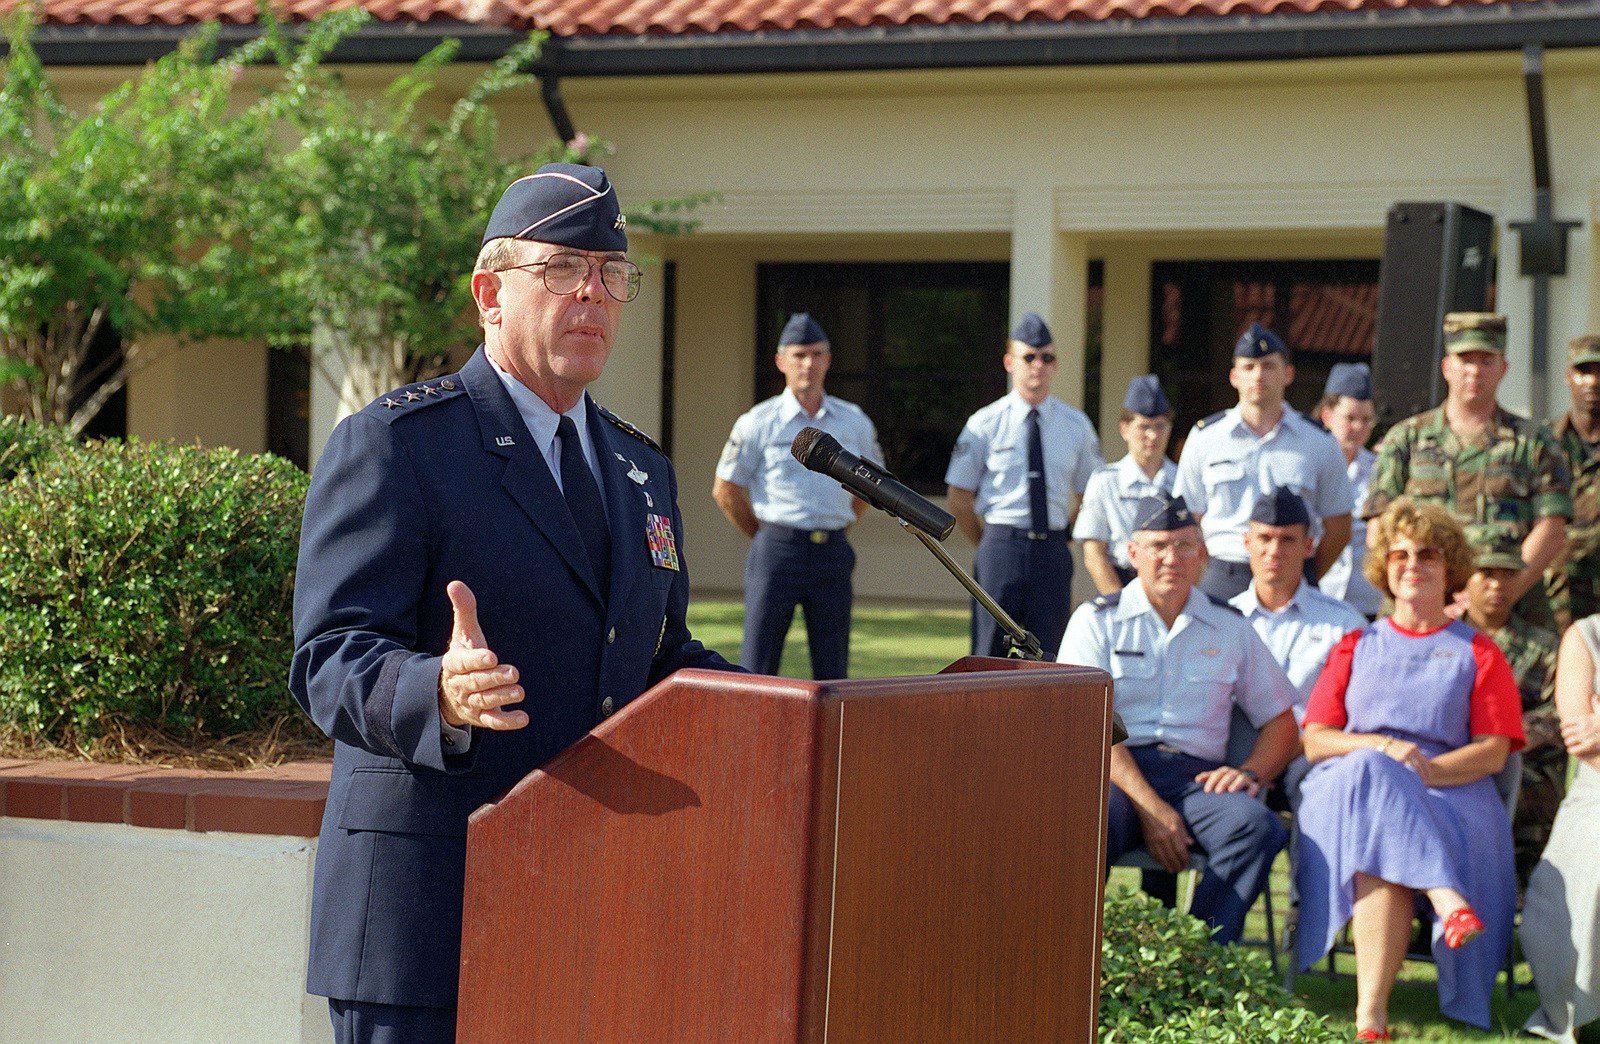 LGEN Joseph Redden, Air University commander, speaks at a retreat ceremony celebrating the 50th anniversary of the Air Force